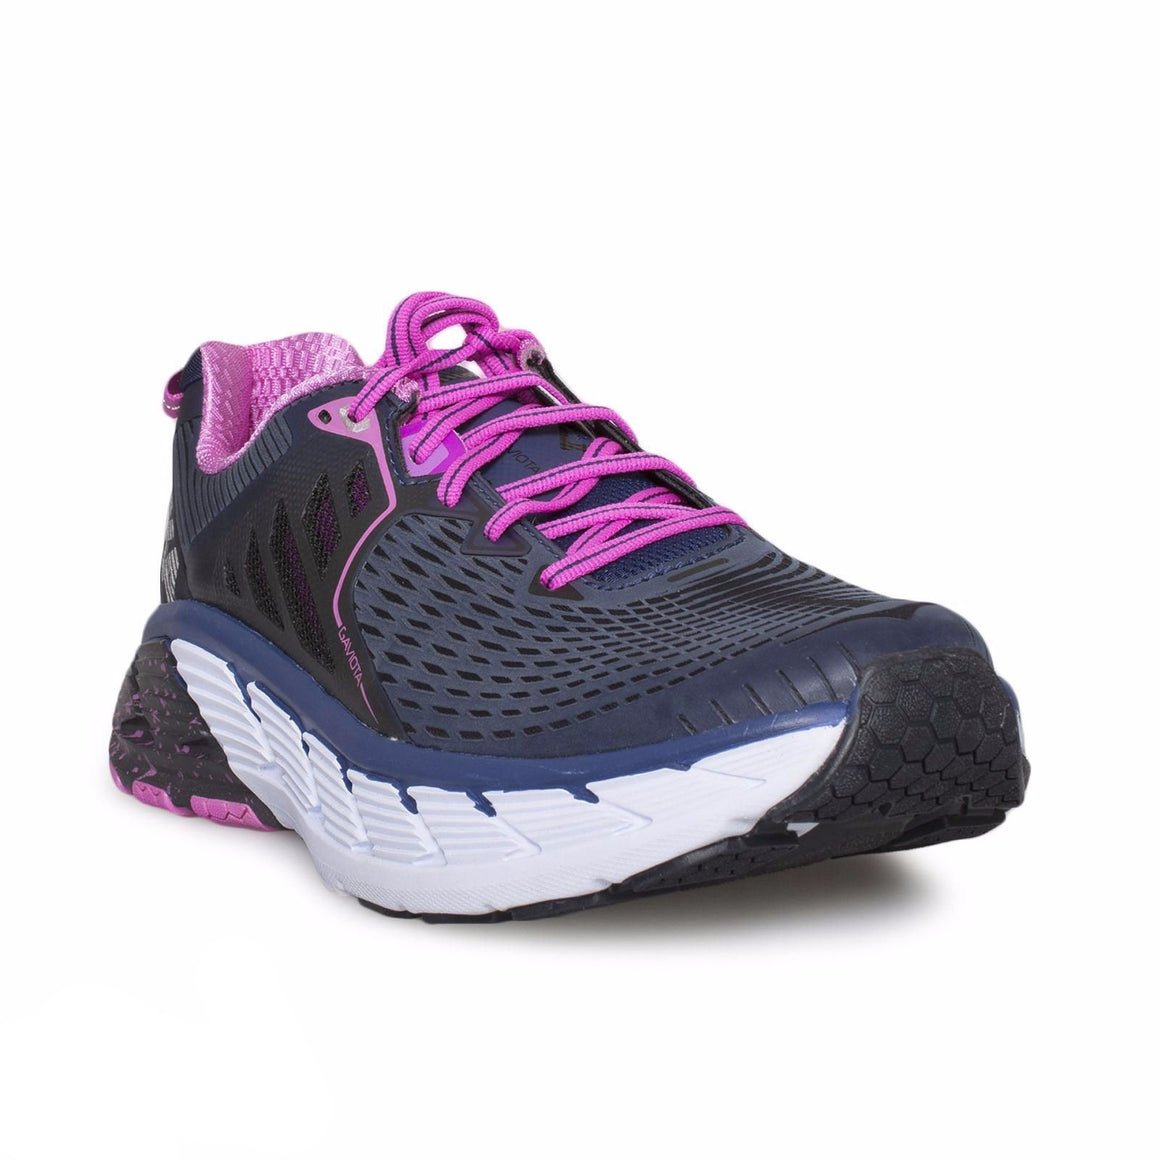 Hoka Gaviota Medieval Blue / Fuchsia Running Shoes